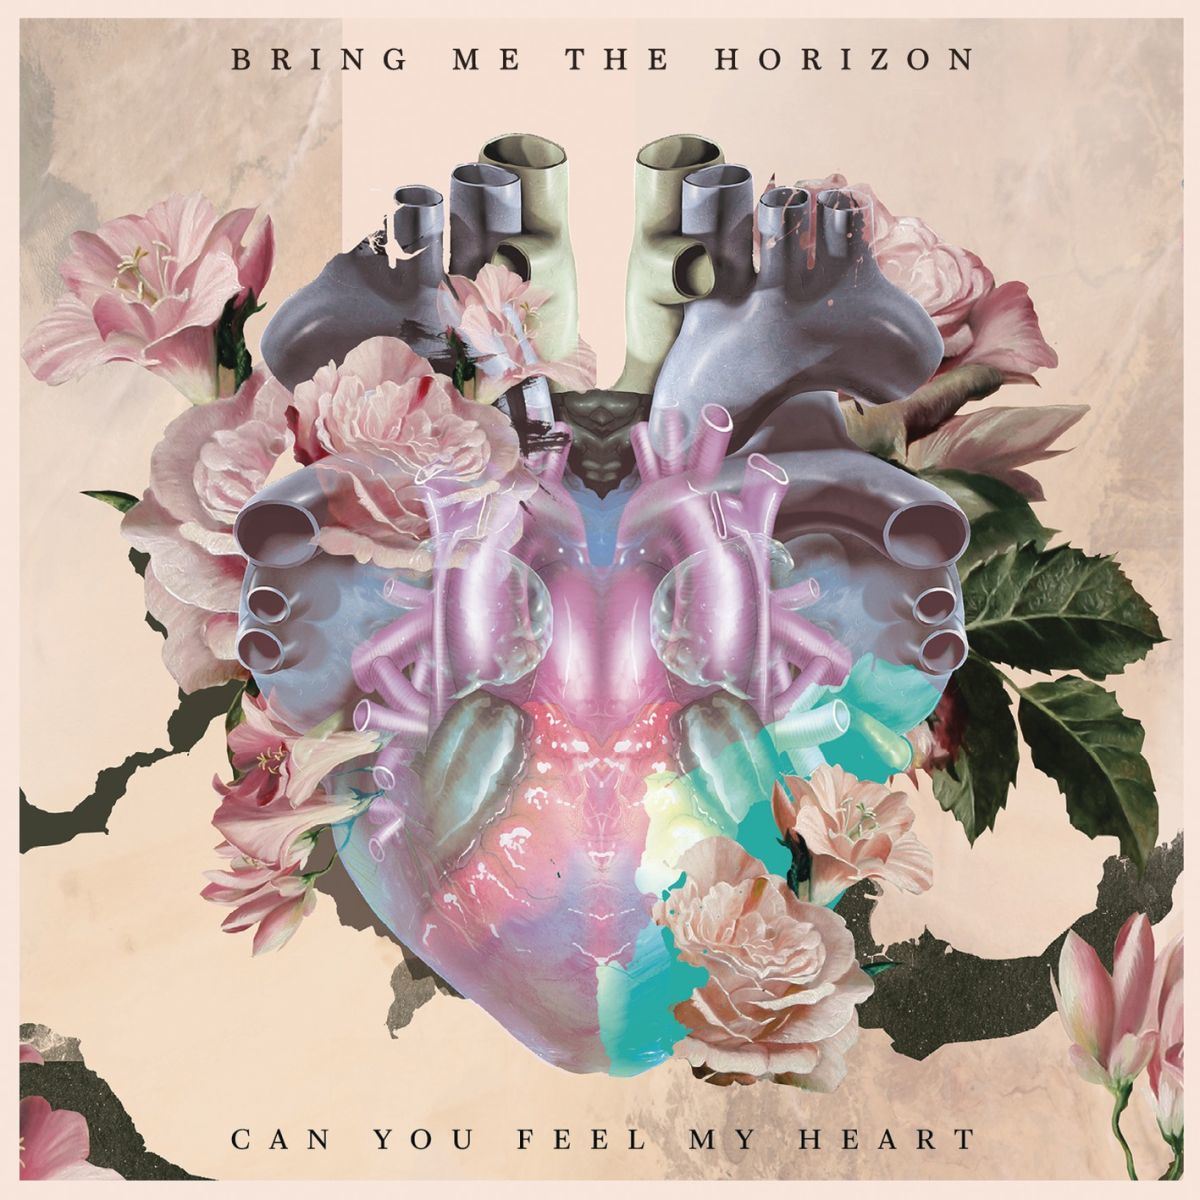 Bring Me The Horizon - Can you feel my heart [single] (2013)